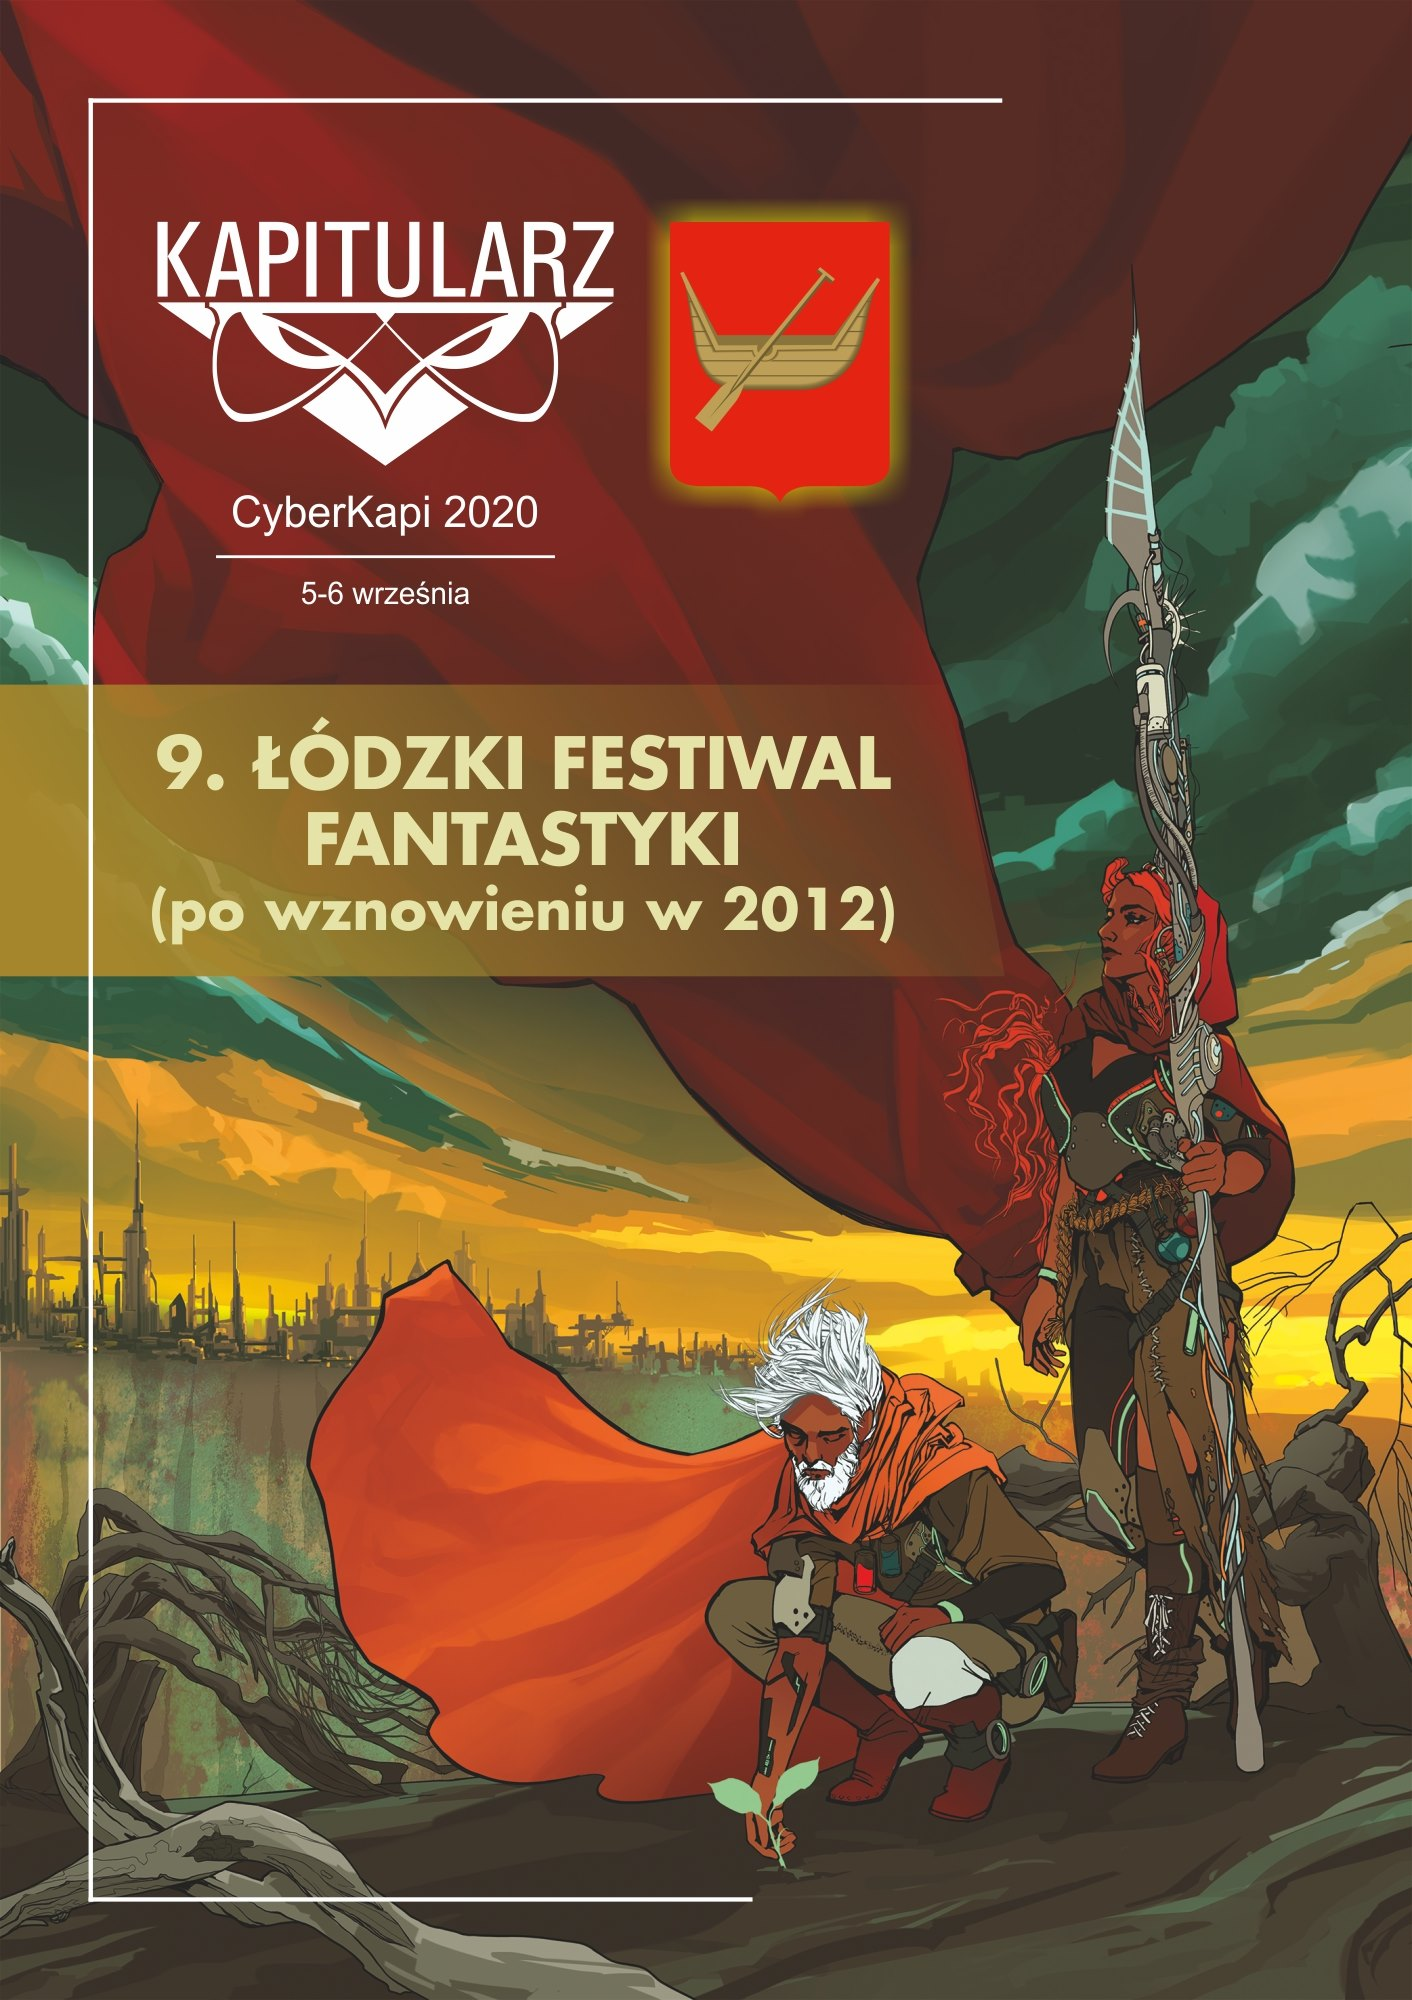 Convention poster. Picture shows an old man crouching and a women standing. Man planst a plant and woman holds a spear. There is also convention name and logo. Poster features also a coat of arms of Lódż - boad on the red field.